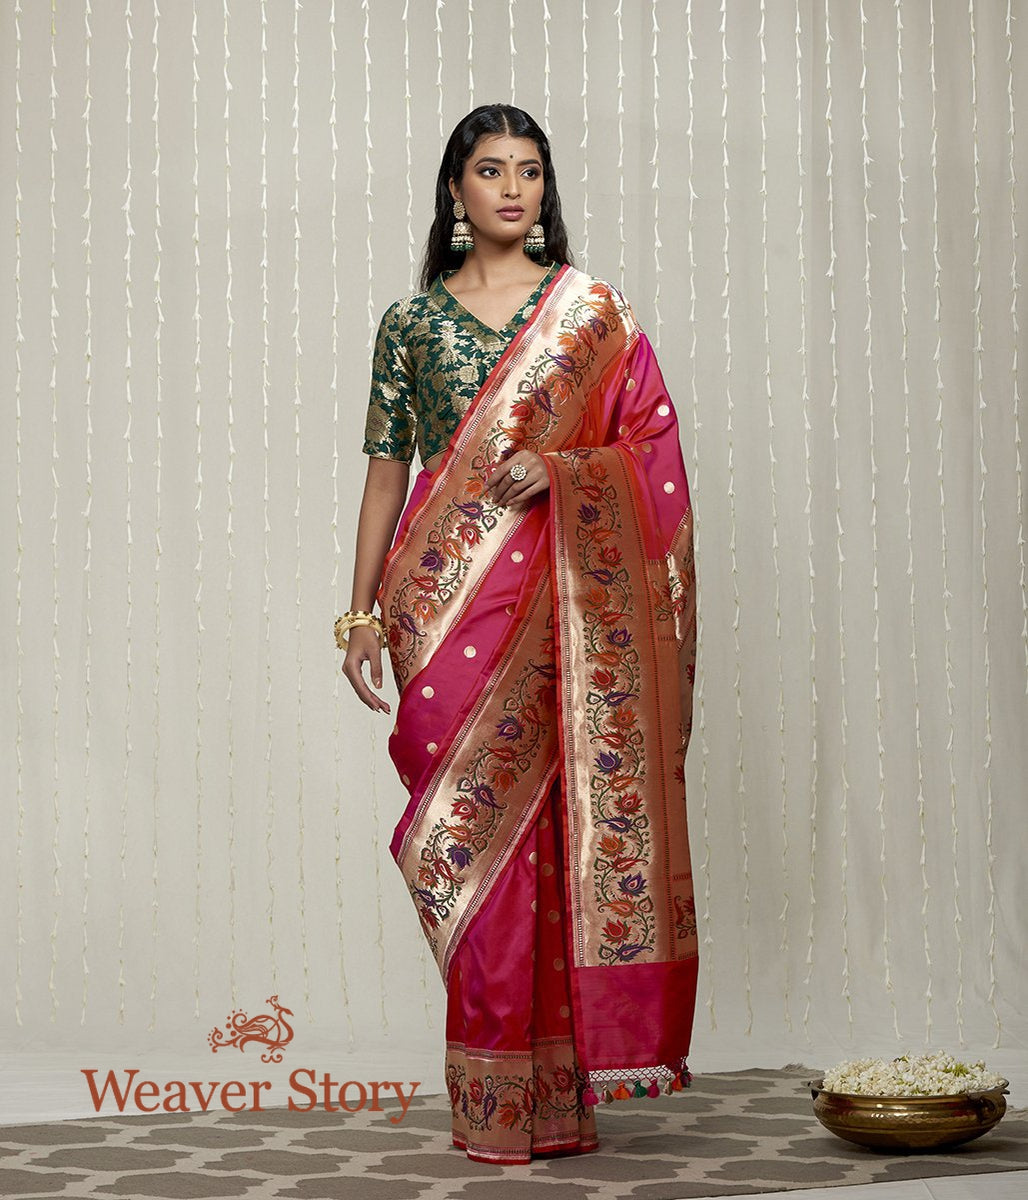 Handwoven Pink Paithani Border Saree with Lotus Flower Motifs in the Border